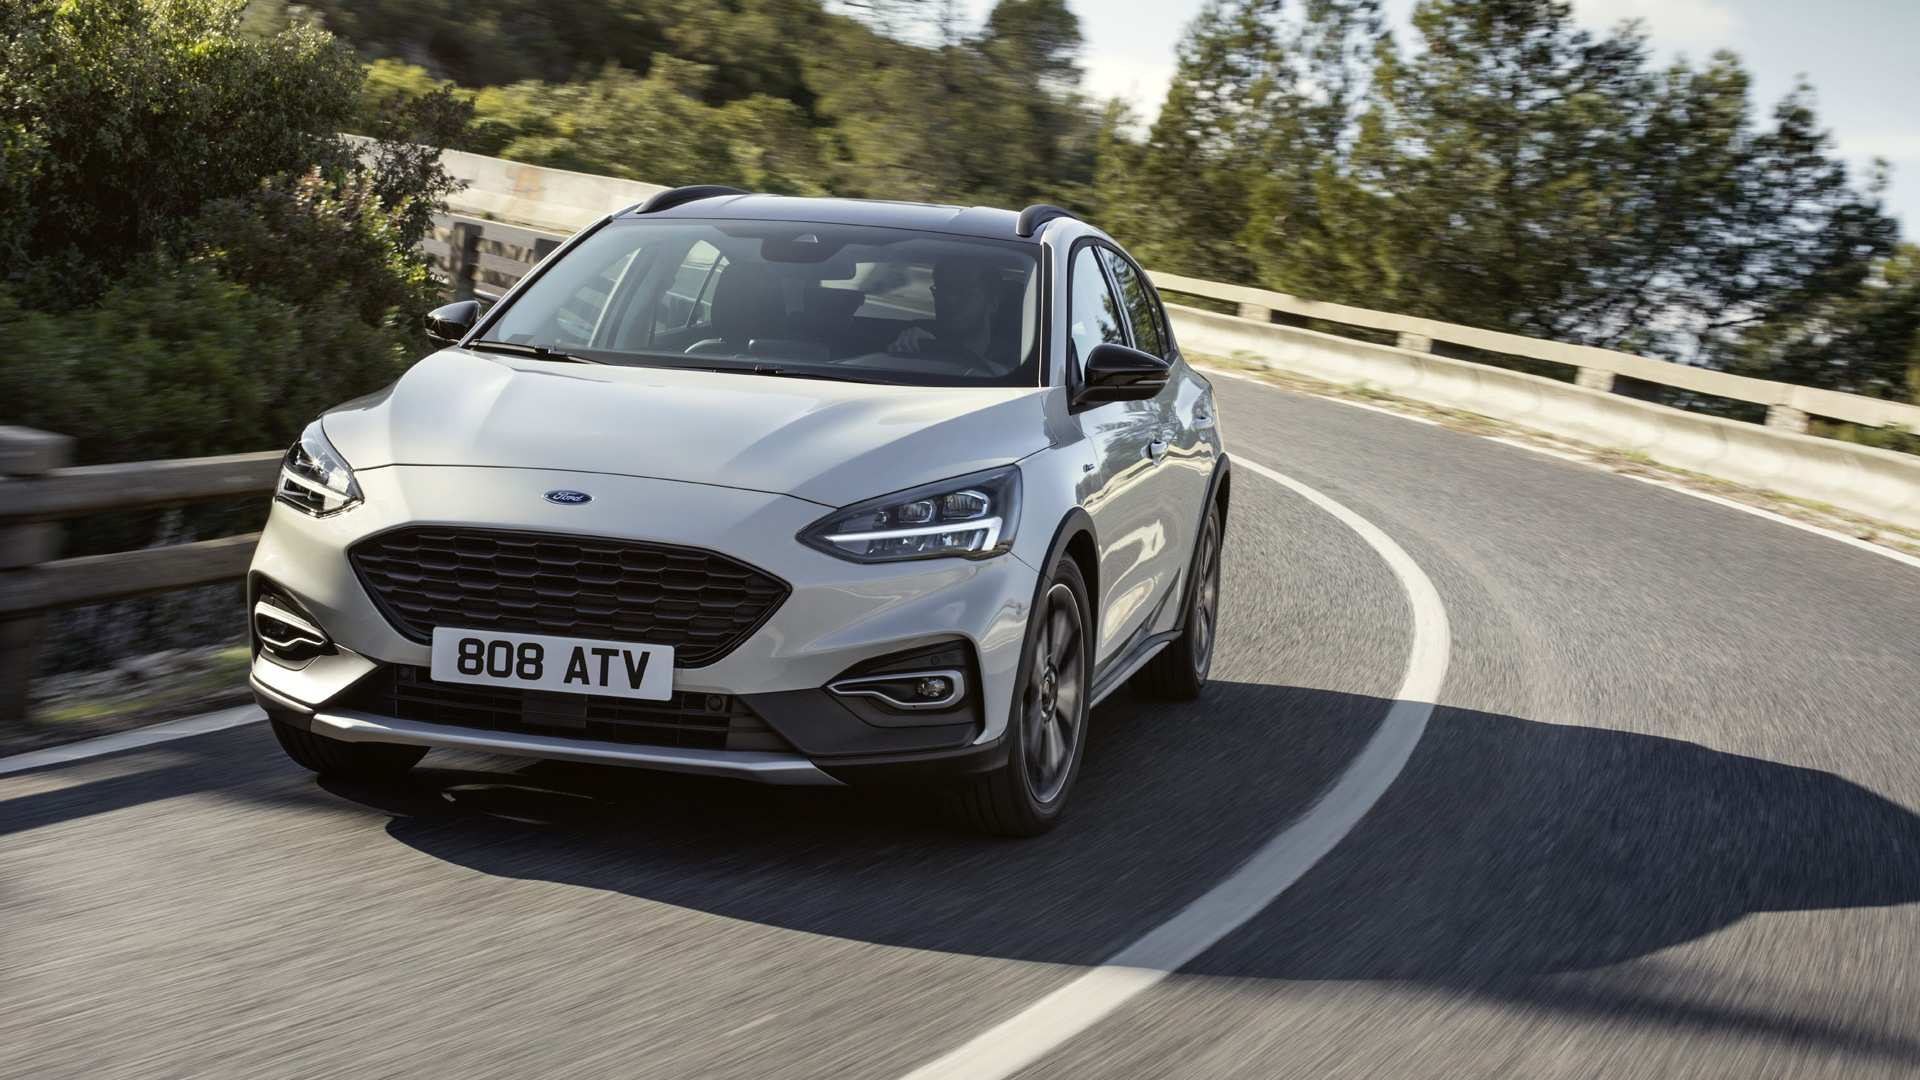 49 The Ford Focus 2020 Images